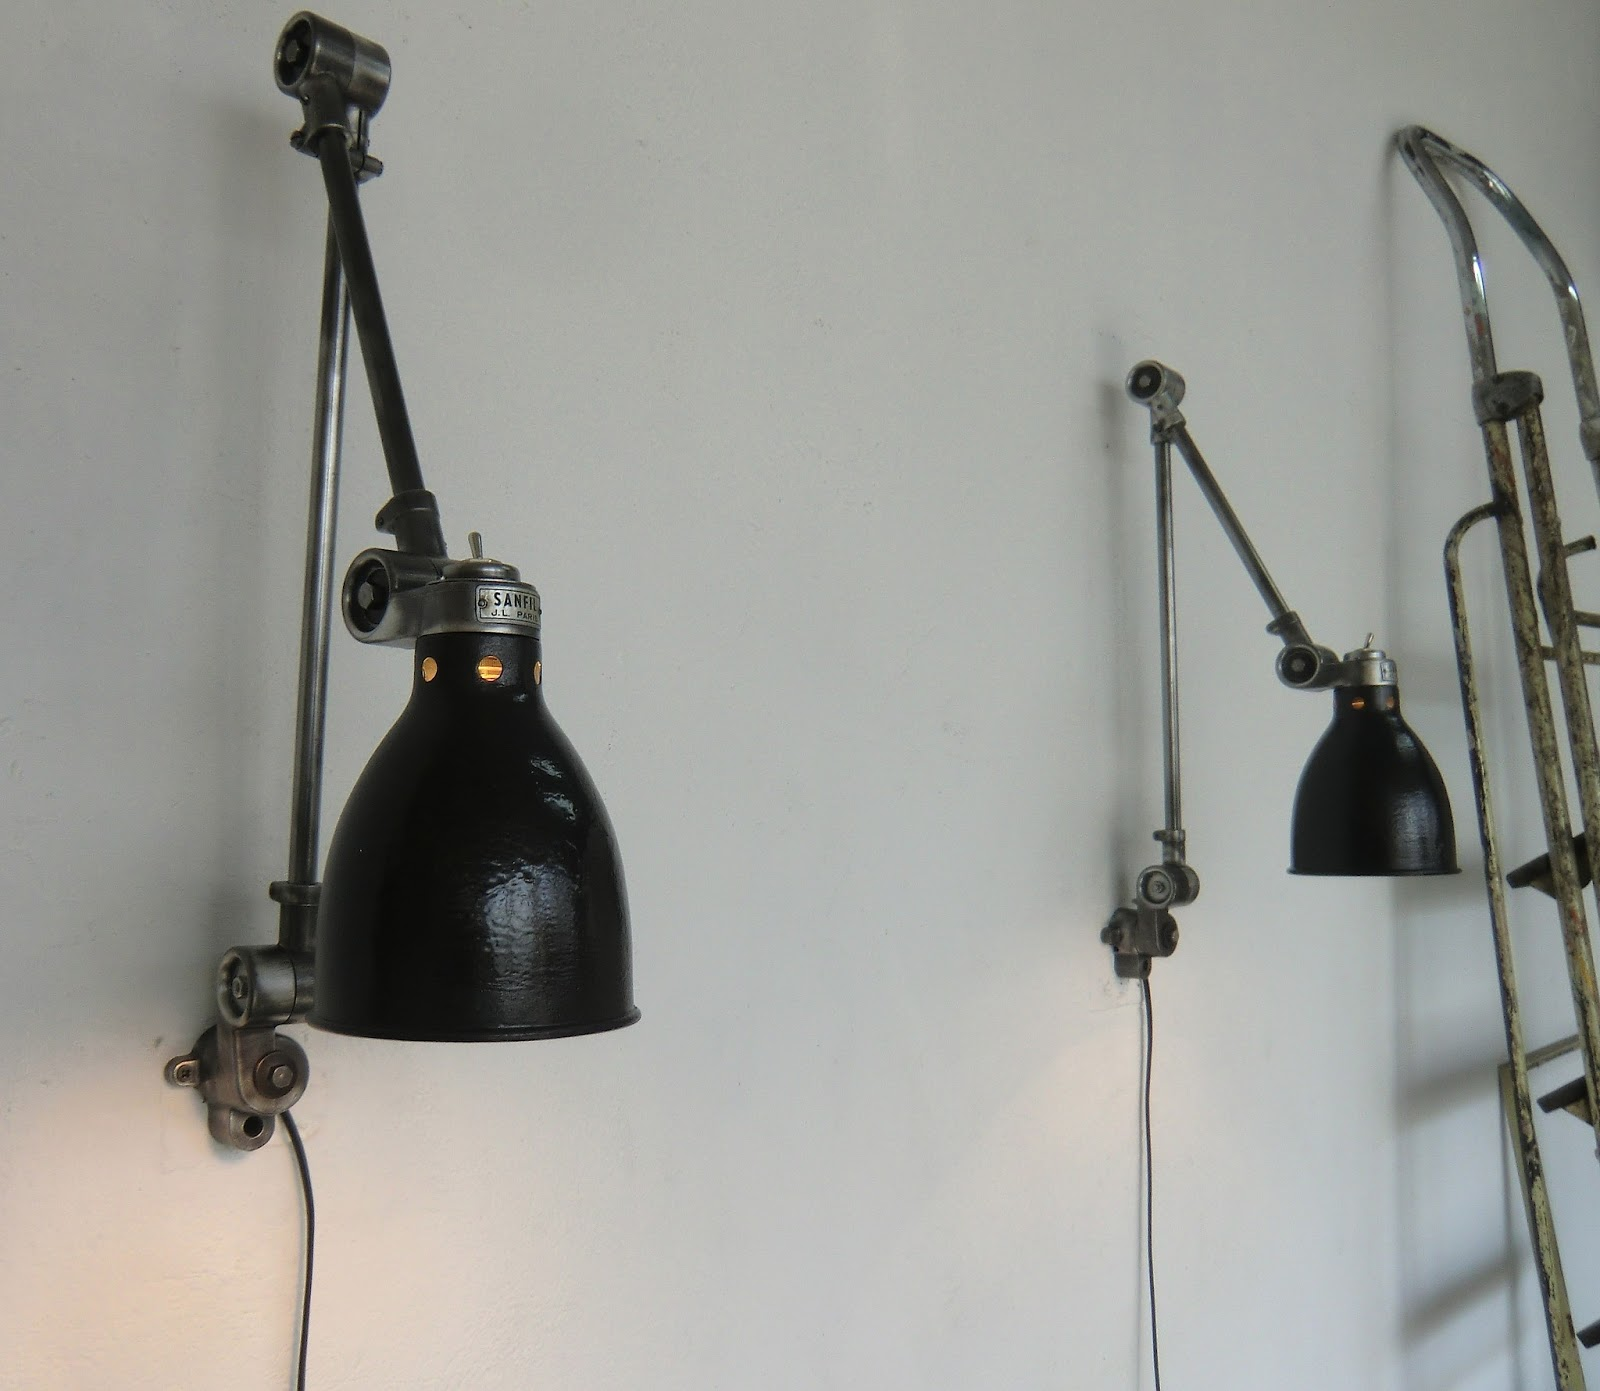 Wo and w collection paire de lampe murale industrielle - Lampe murale industrielle ...